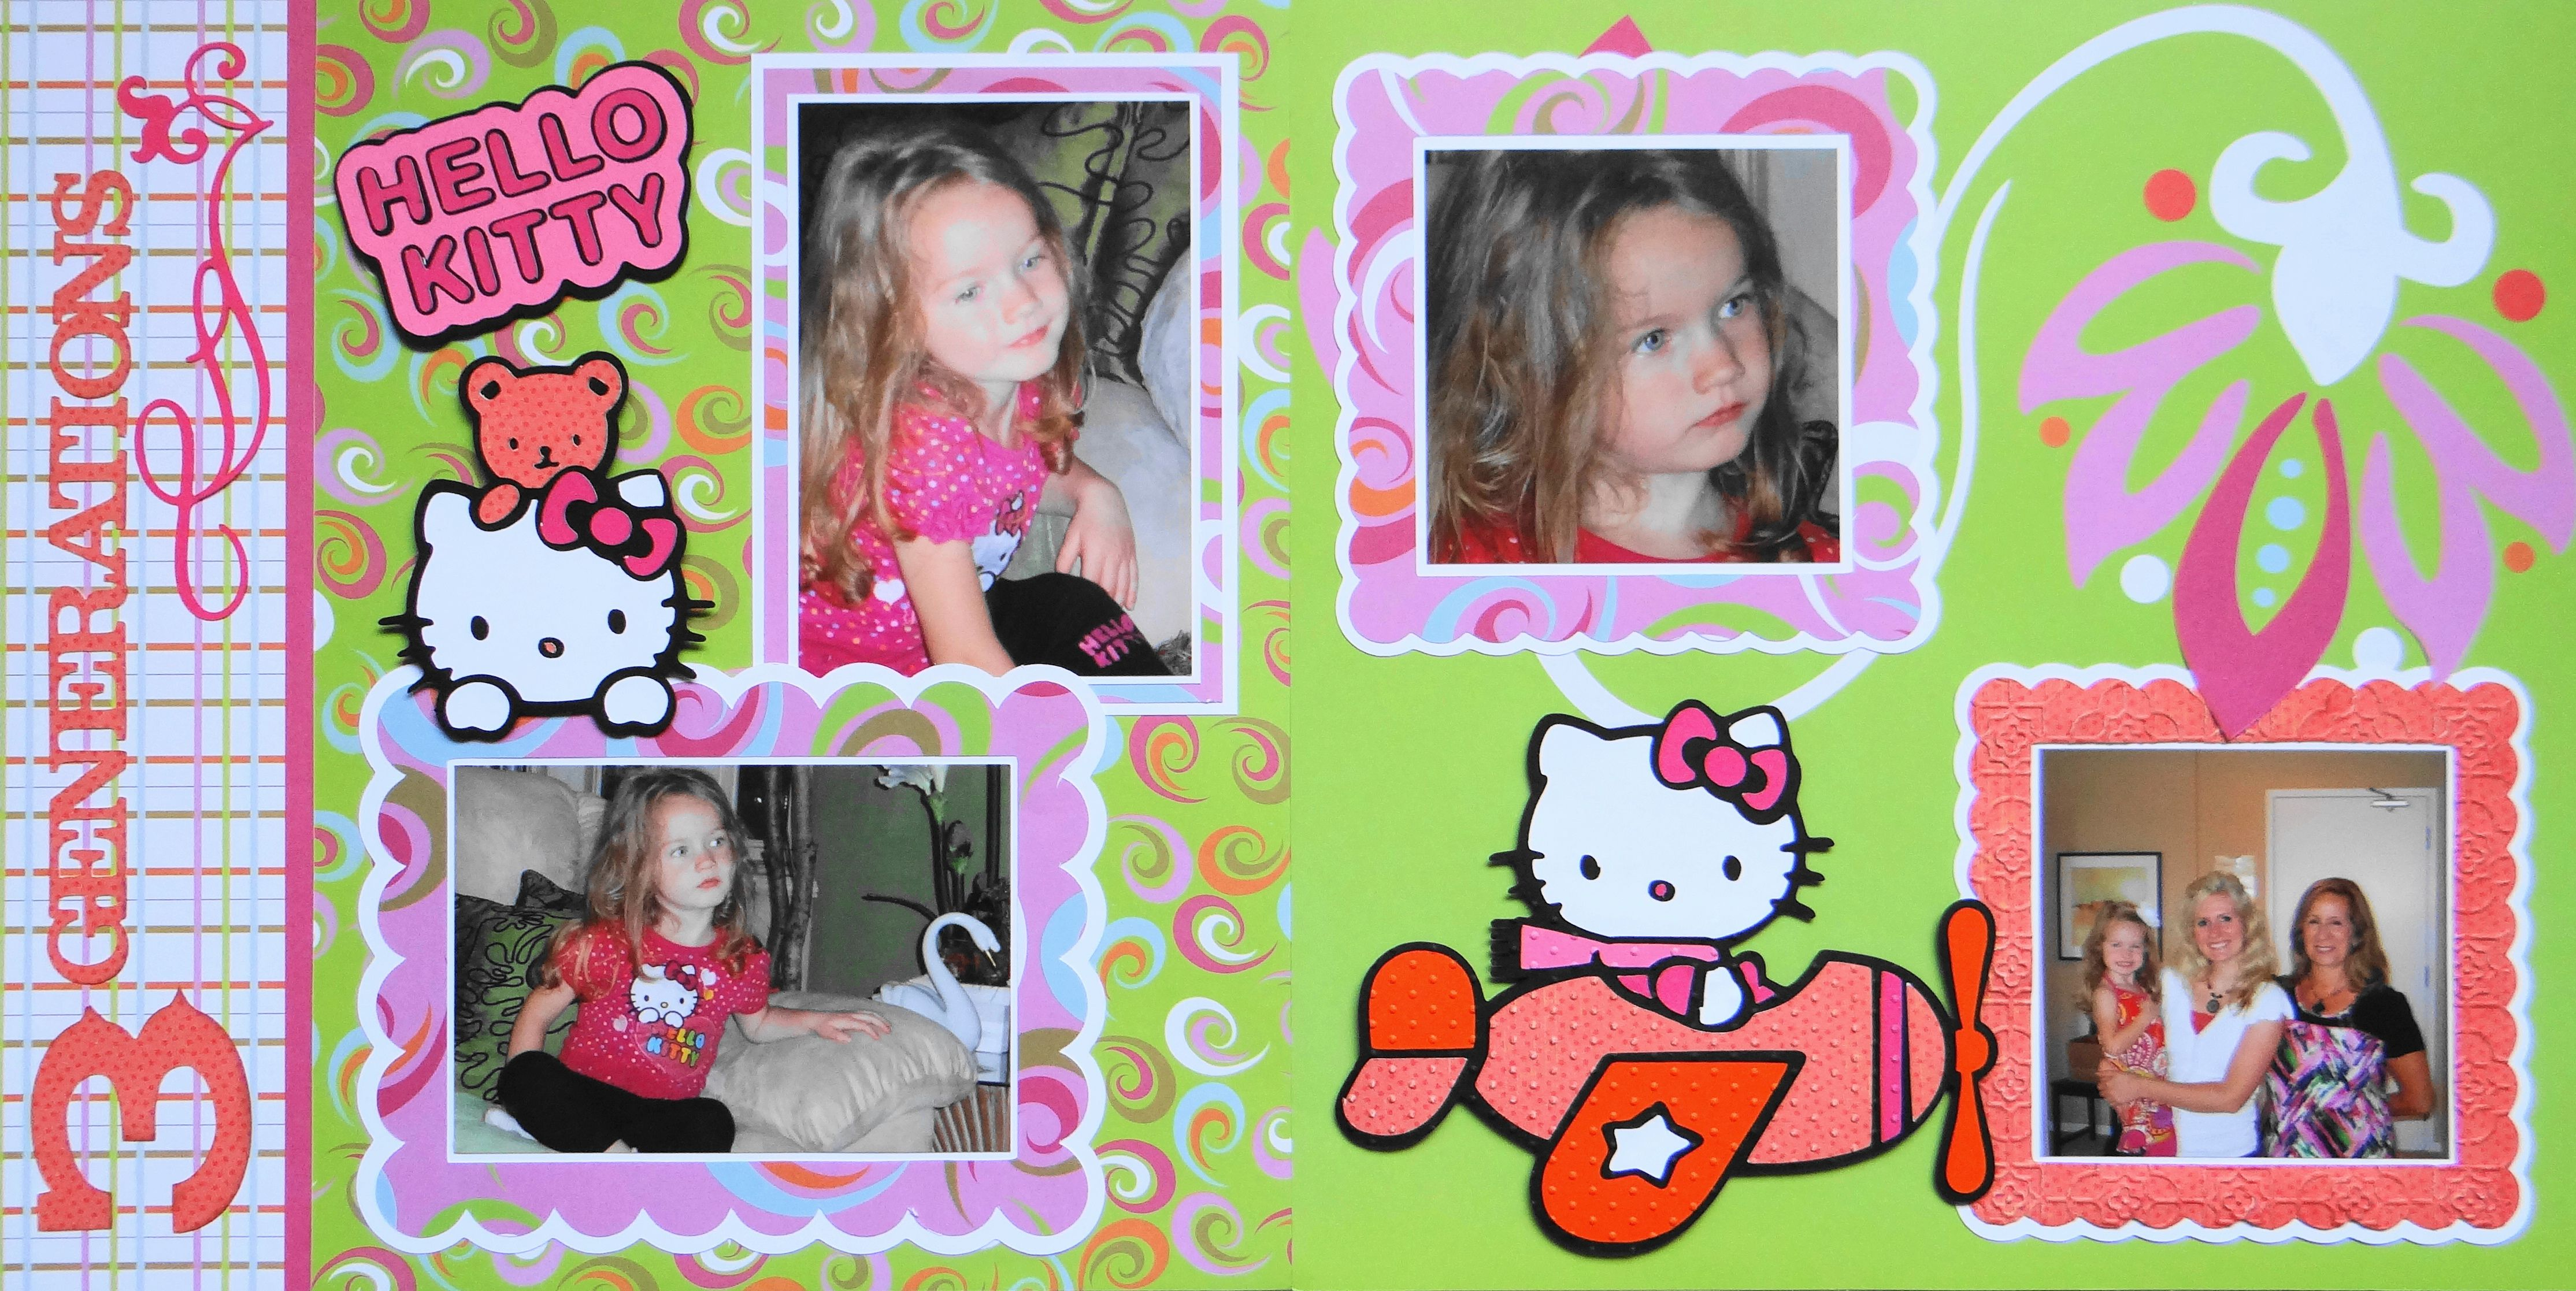 Scrapbook ideas hello kitty - Scrapbook Page The Flower Girl Has Arrived For The Wedding With Hello Kitty